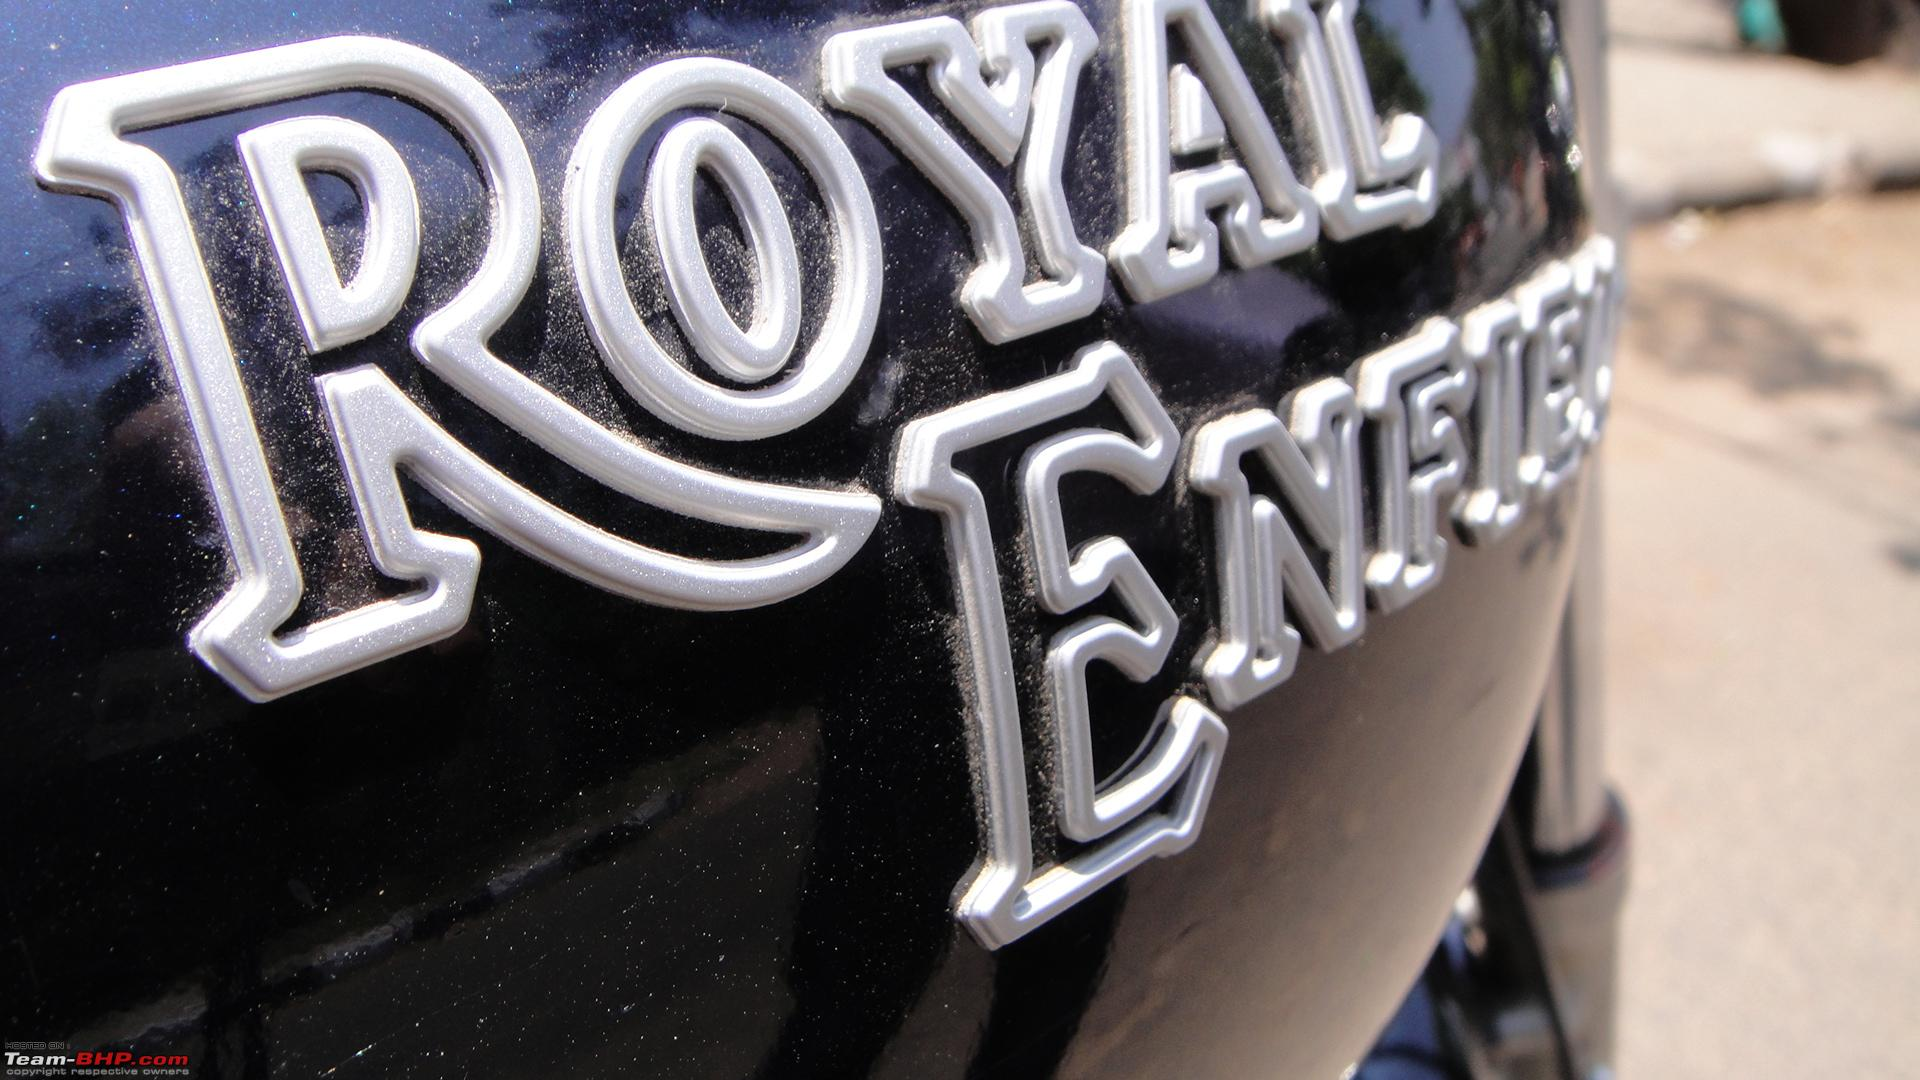 All T Bhp Royal Enfield Owners Your Bike Pics Here Please Page 80